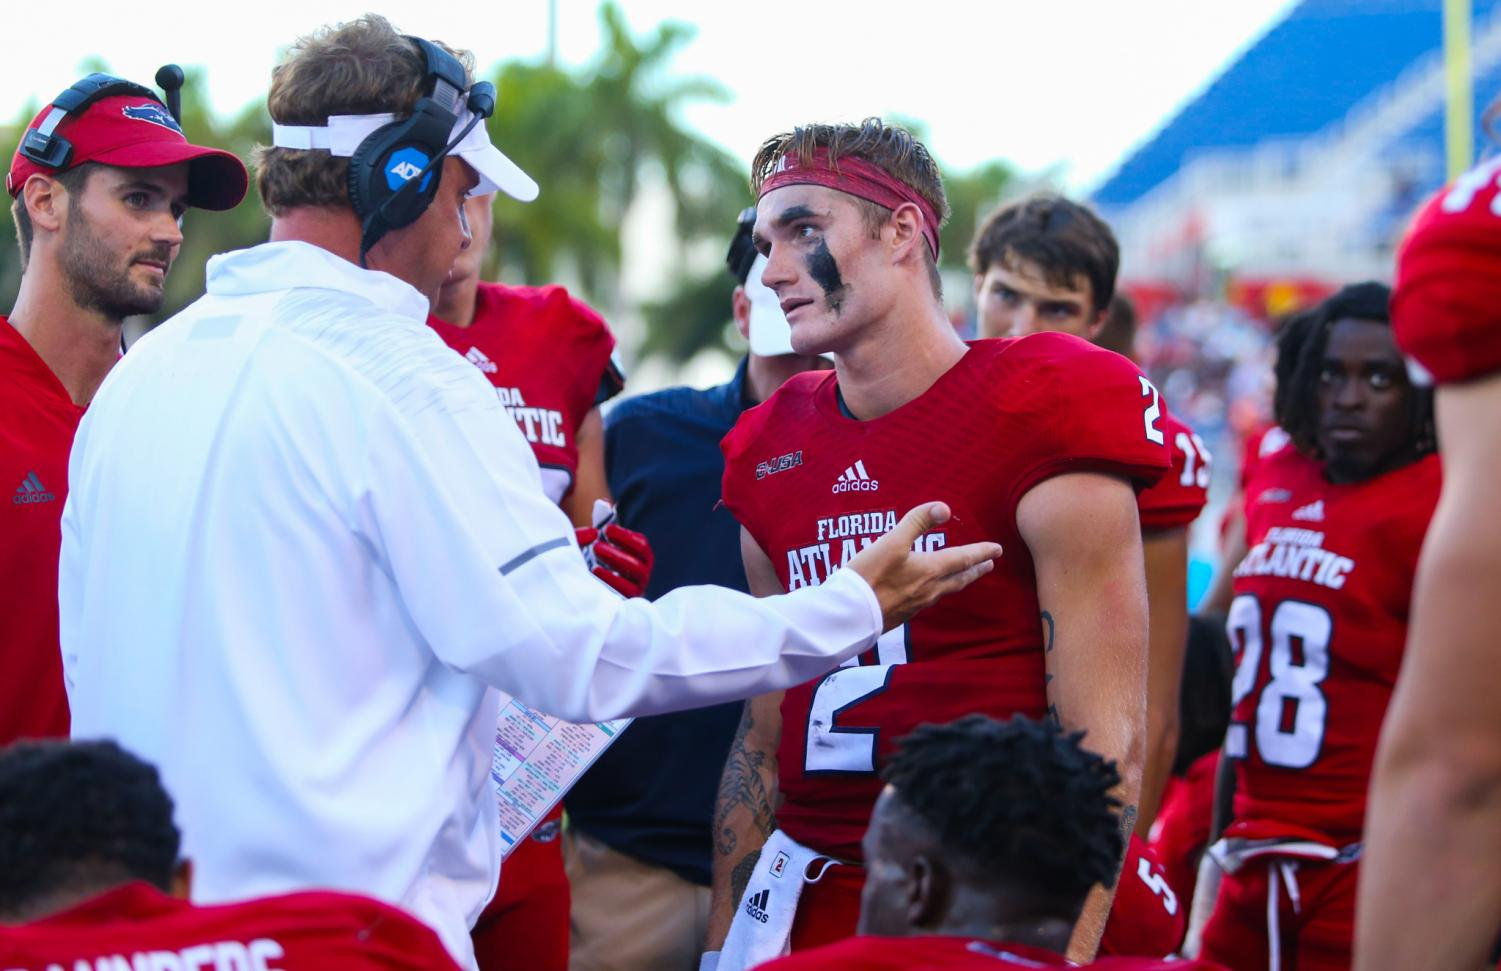 FAU quarterback Chris Robison (2) and FAU head coach Lane Kiffin have a minor discussion after the first quarter was over against Bethune Cookman. Photo by: Alexander Rodriguez